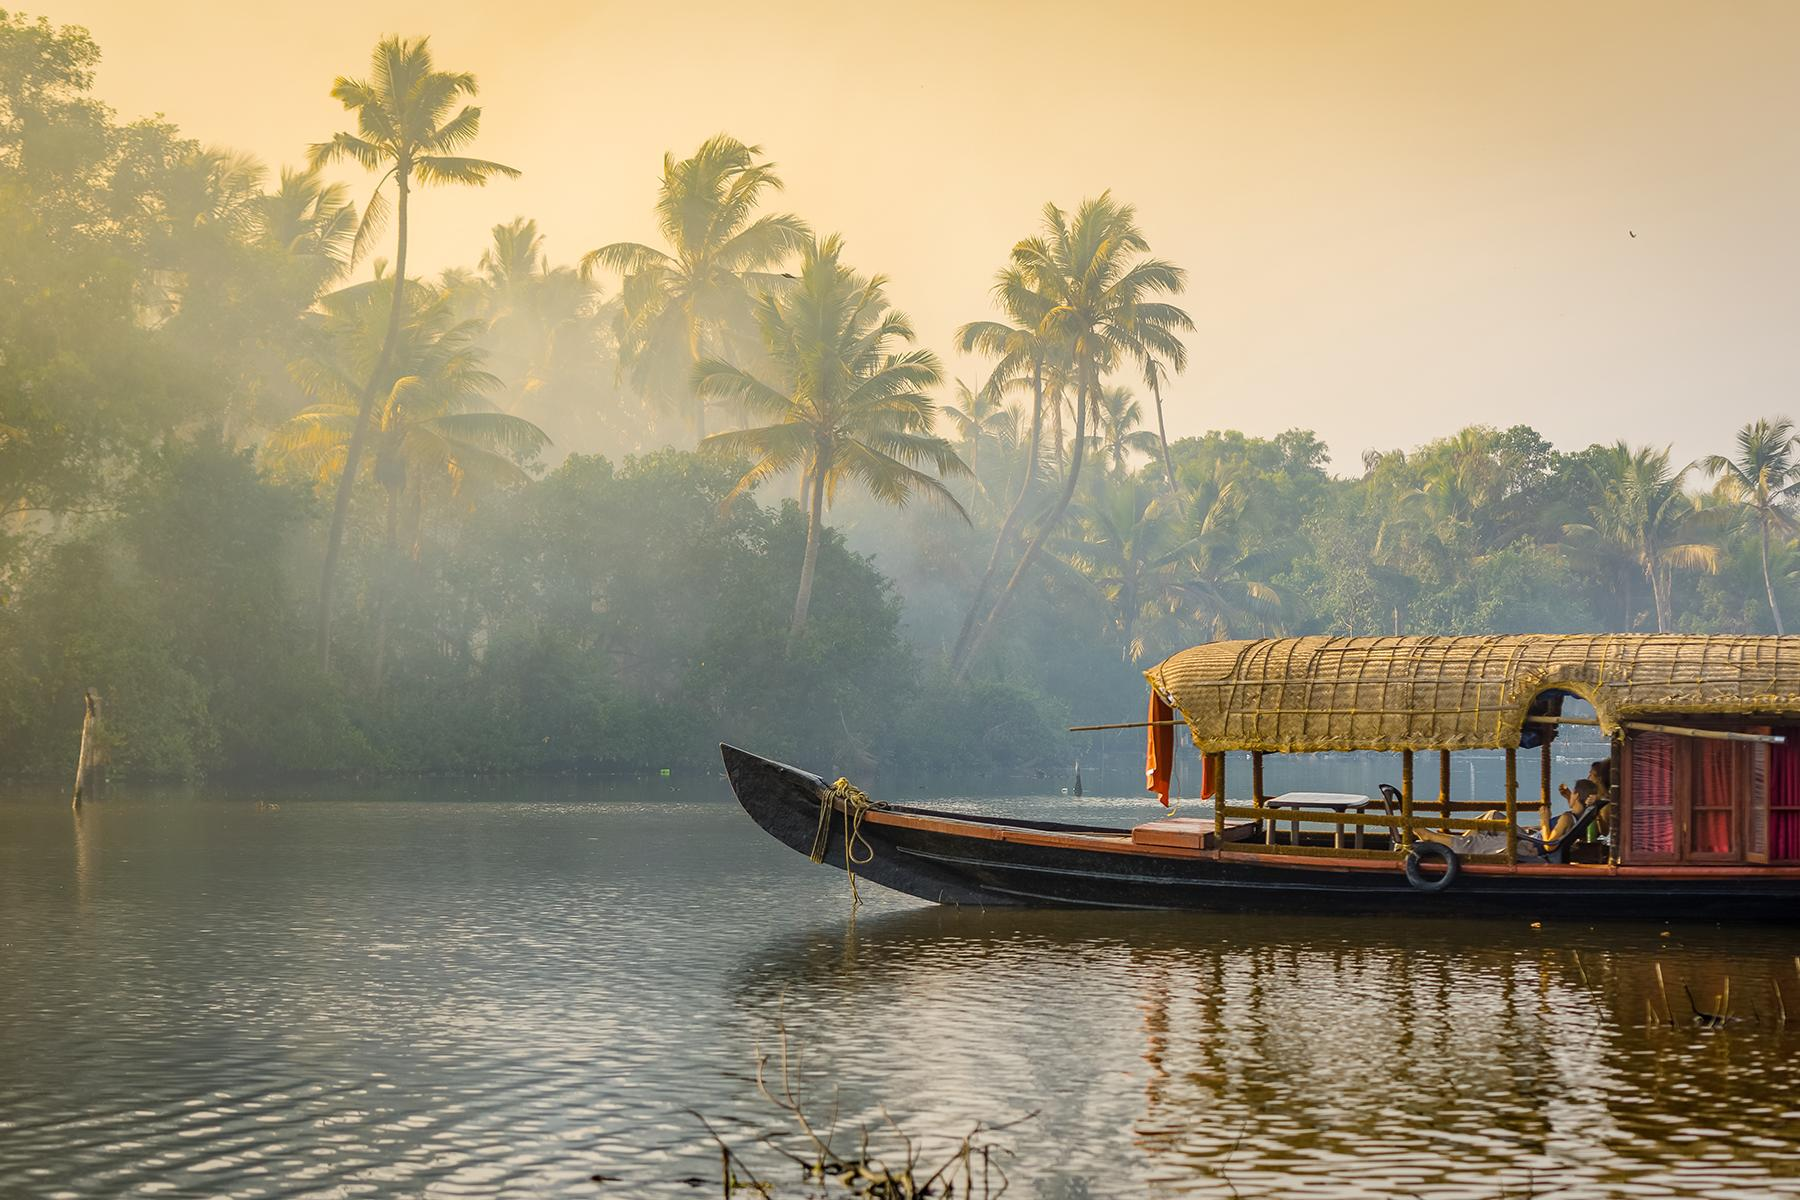 08_BeachHoneymoon__Kerala_shutterstock_677104483